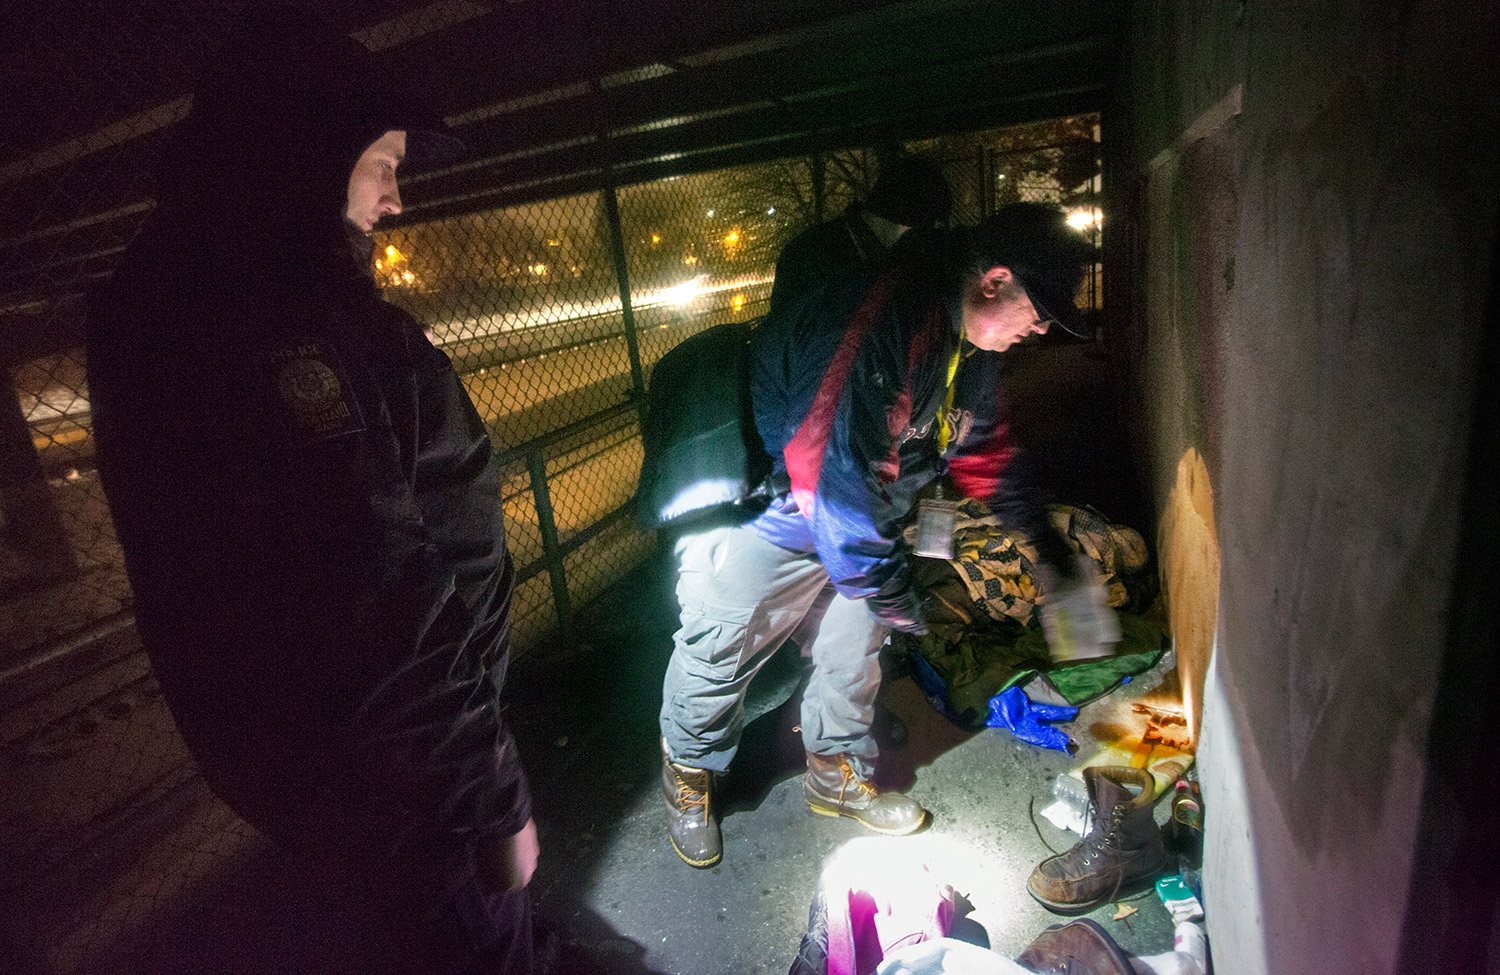 Rob Parritt looks through items after discovering an empty camp in a locked area under an Interstate 295 overpass near Fitzpatrick Stadium.